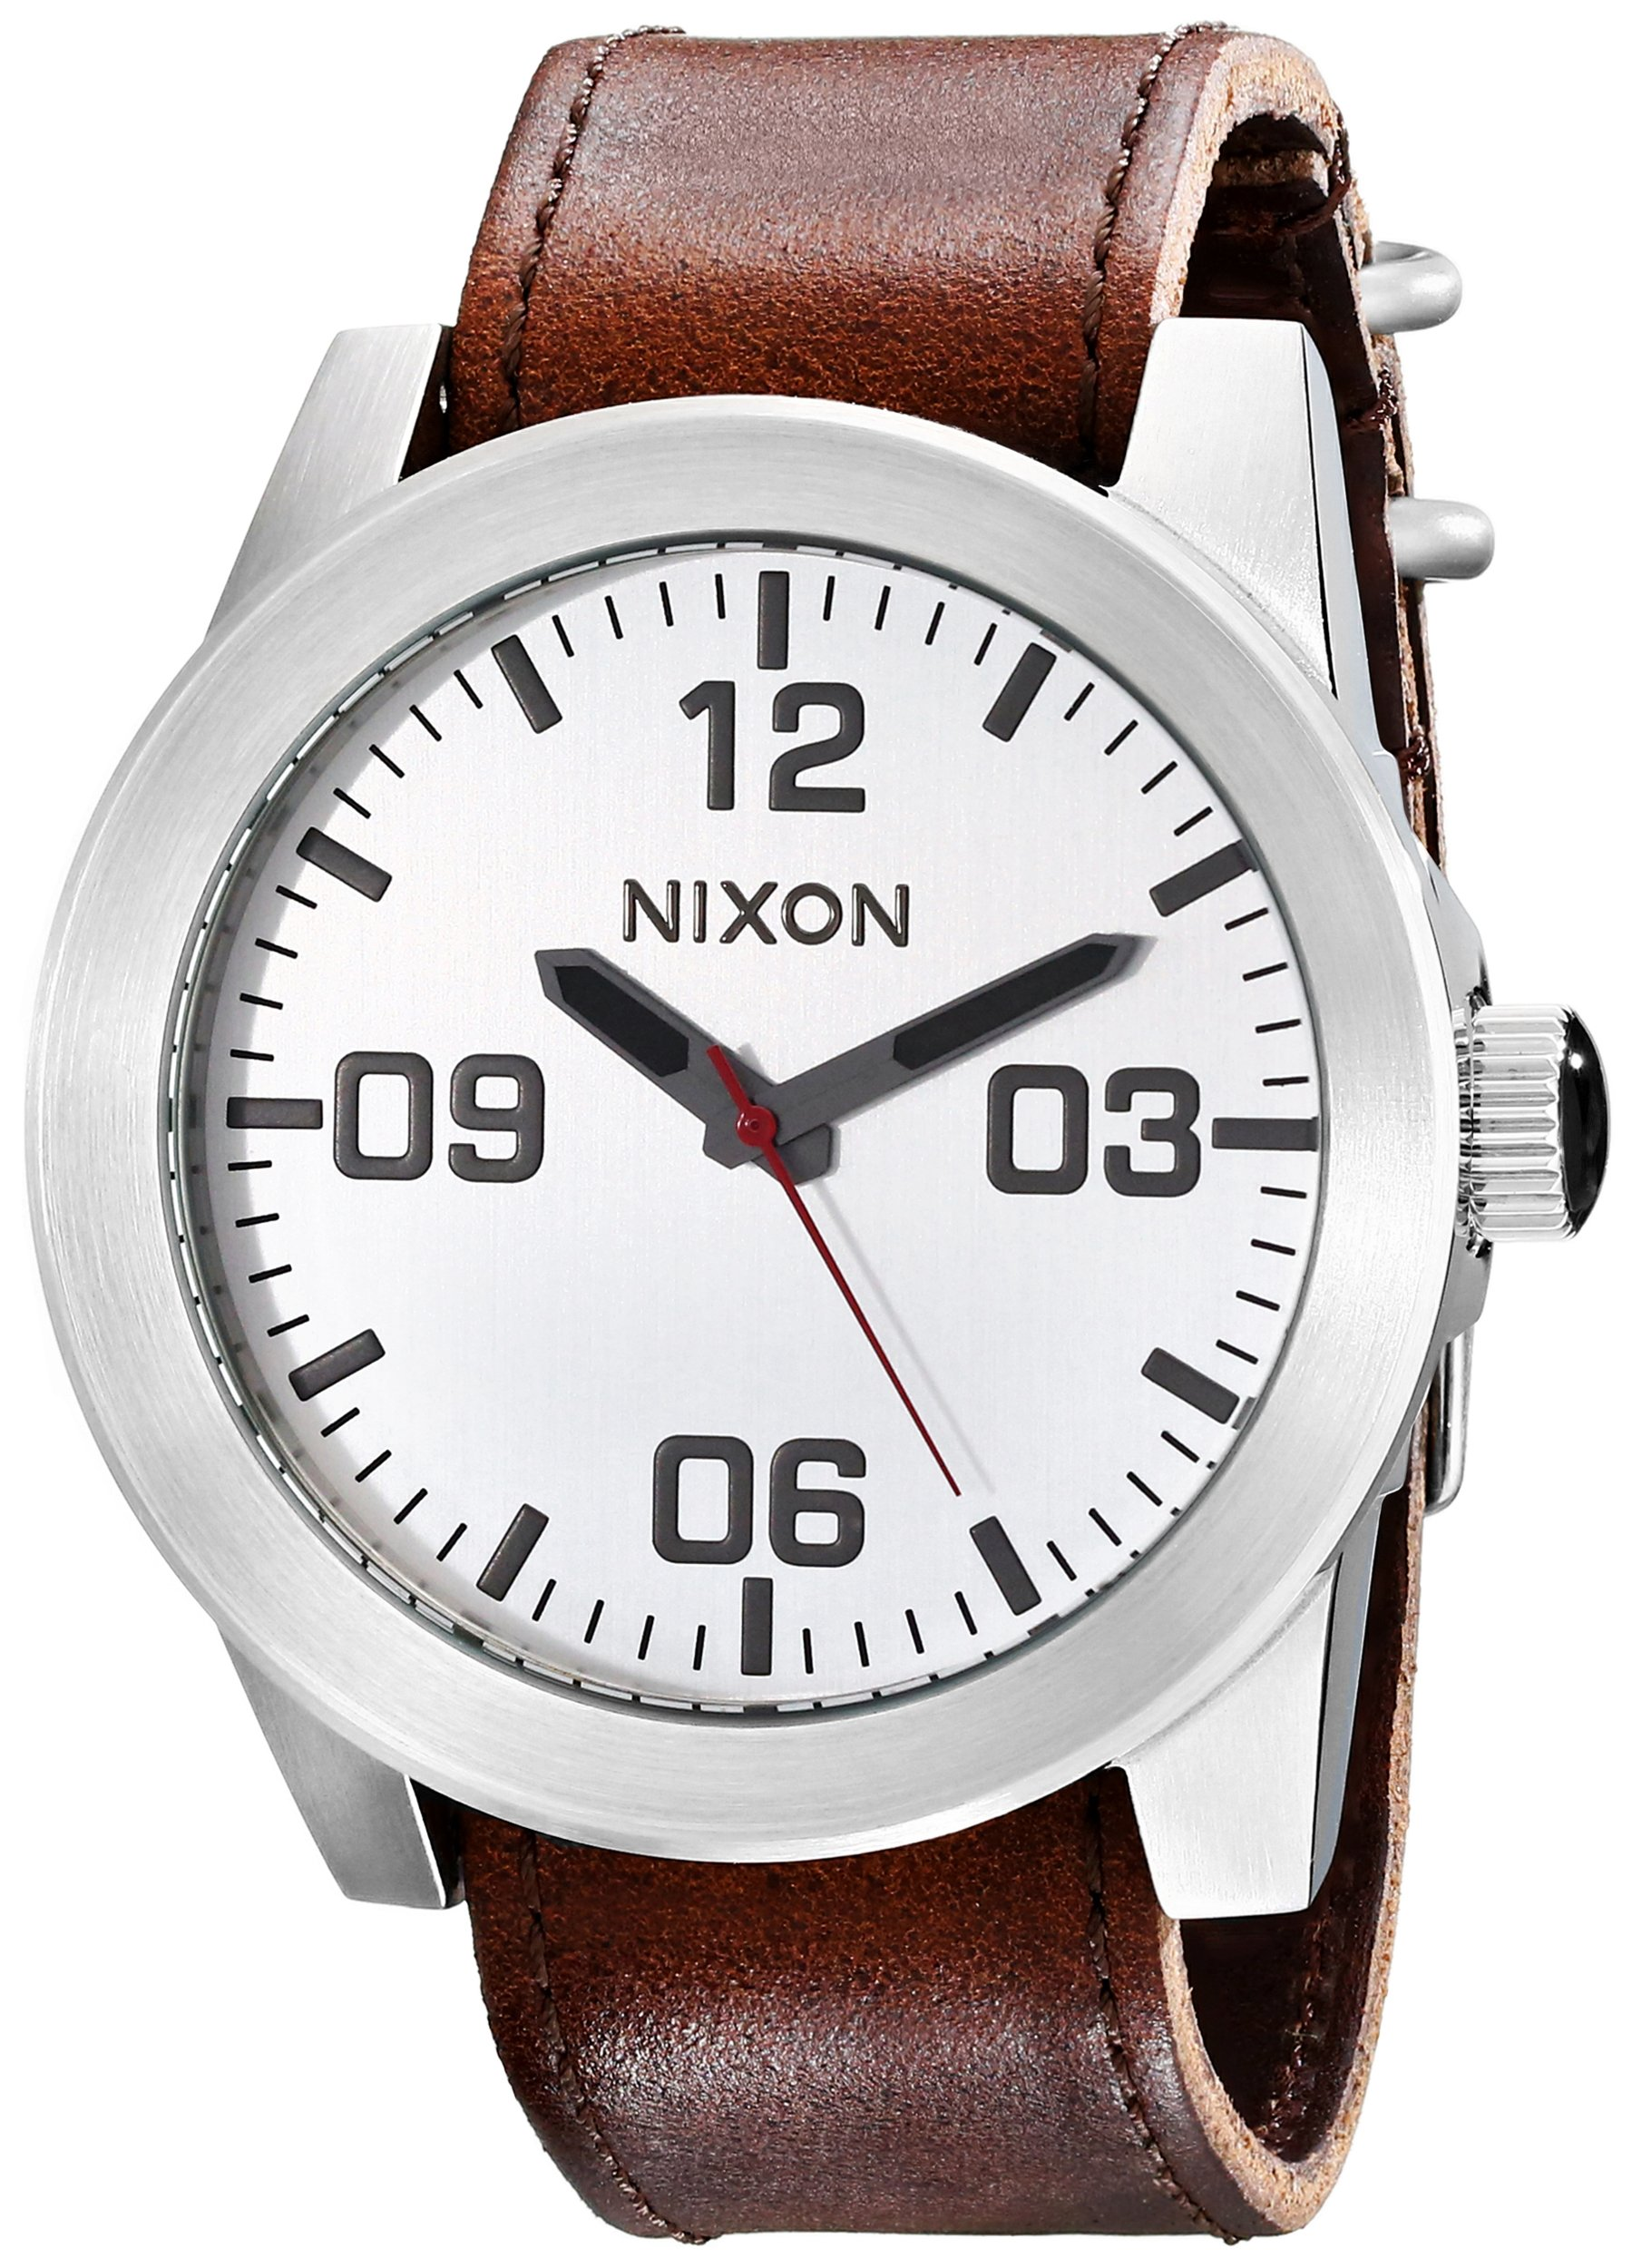 NIXON Men's Corporal Series Analog Quartz Watch / Leather or Canvas Band / 100 M Water Resistant and Solid Stainless Steel Case by NIXON